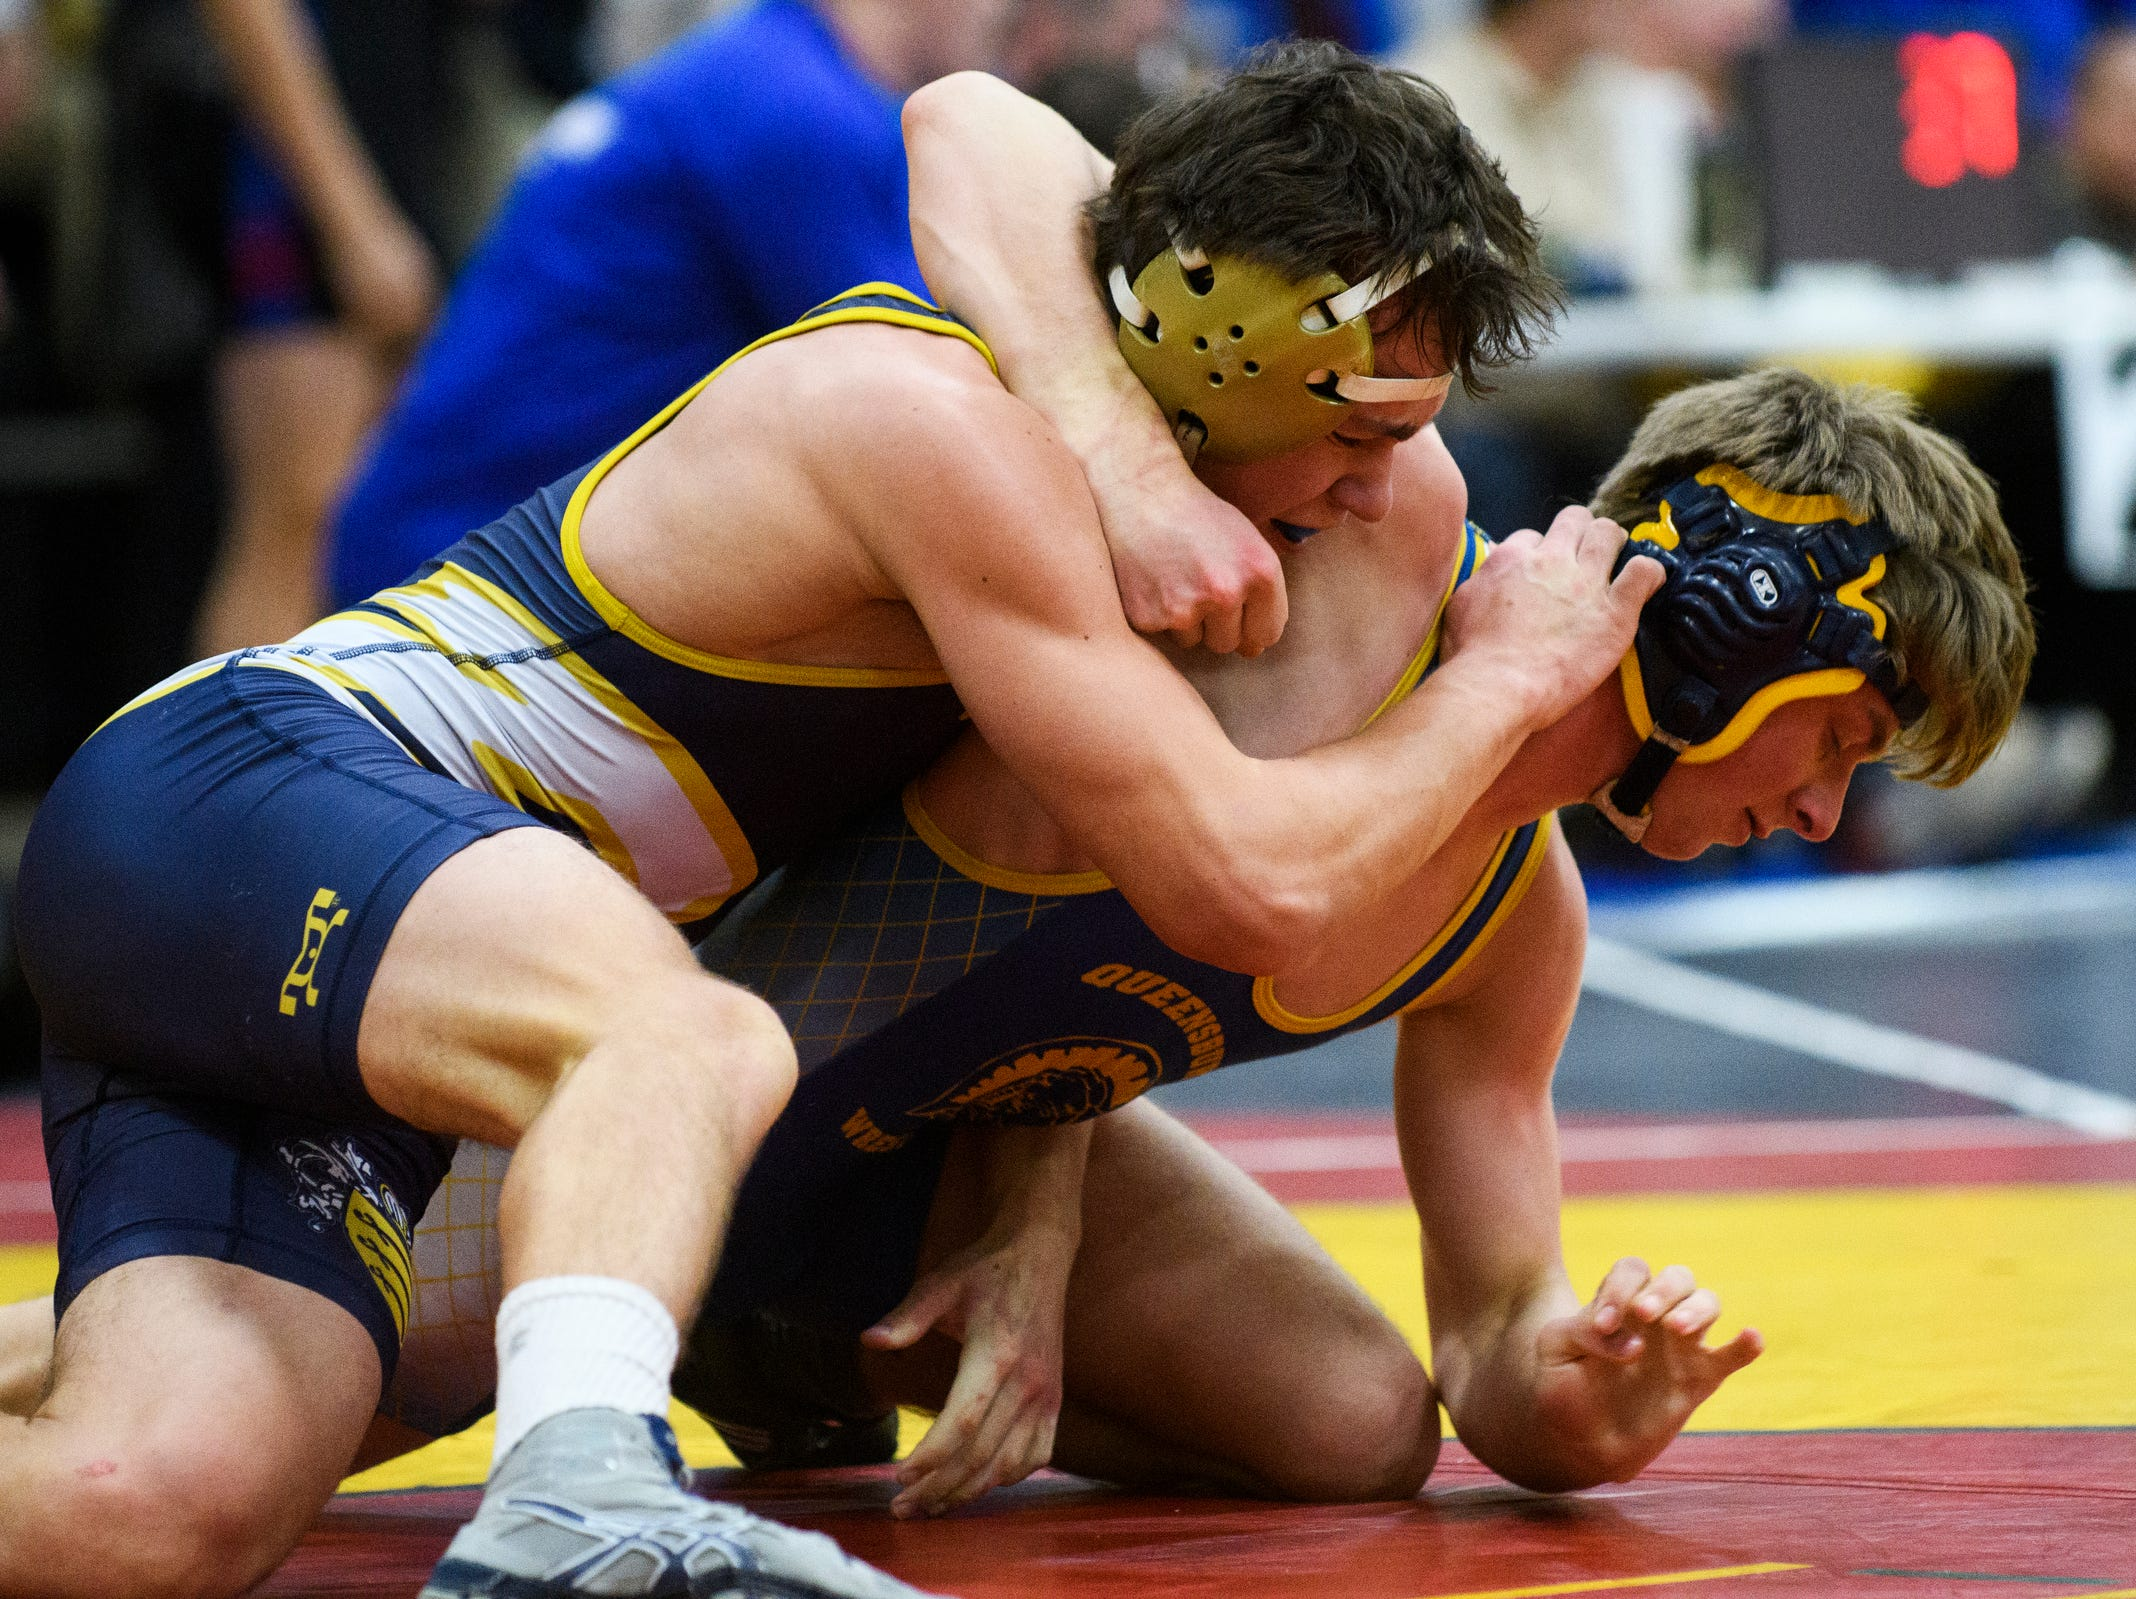 Essex's Gill Stawinski tries to pin down Queesbury's Ryan Lappan during the Michael J. Baker Essex Classic wrestling tournament at Essex High School on Friday afternoon January 18, 2019 in Essex, Vermont.